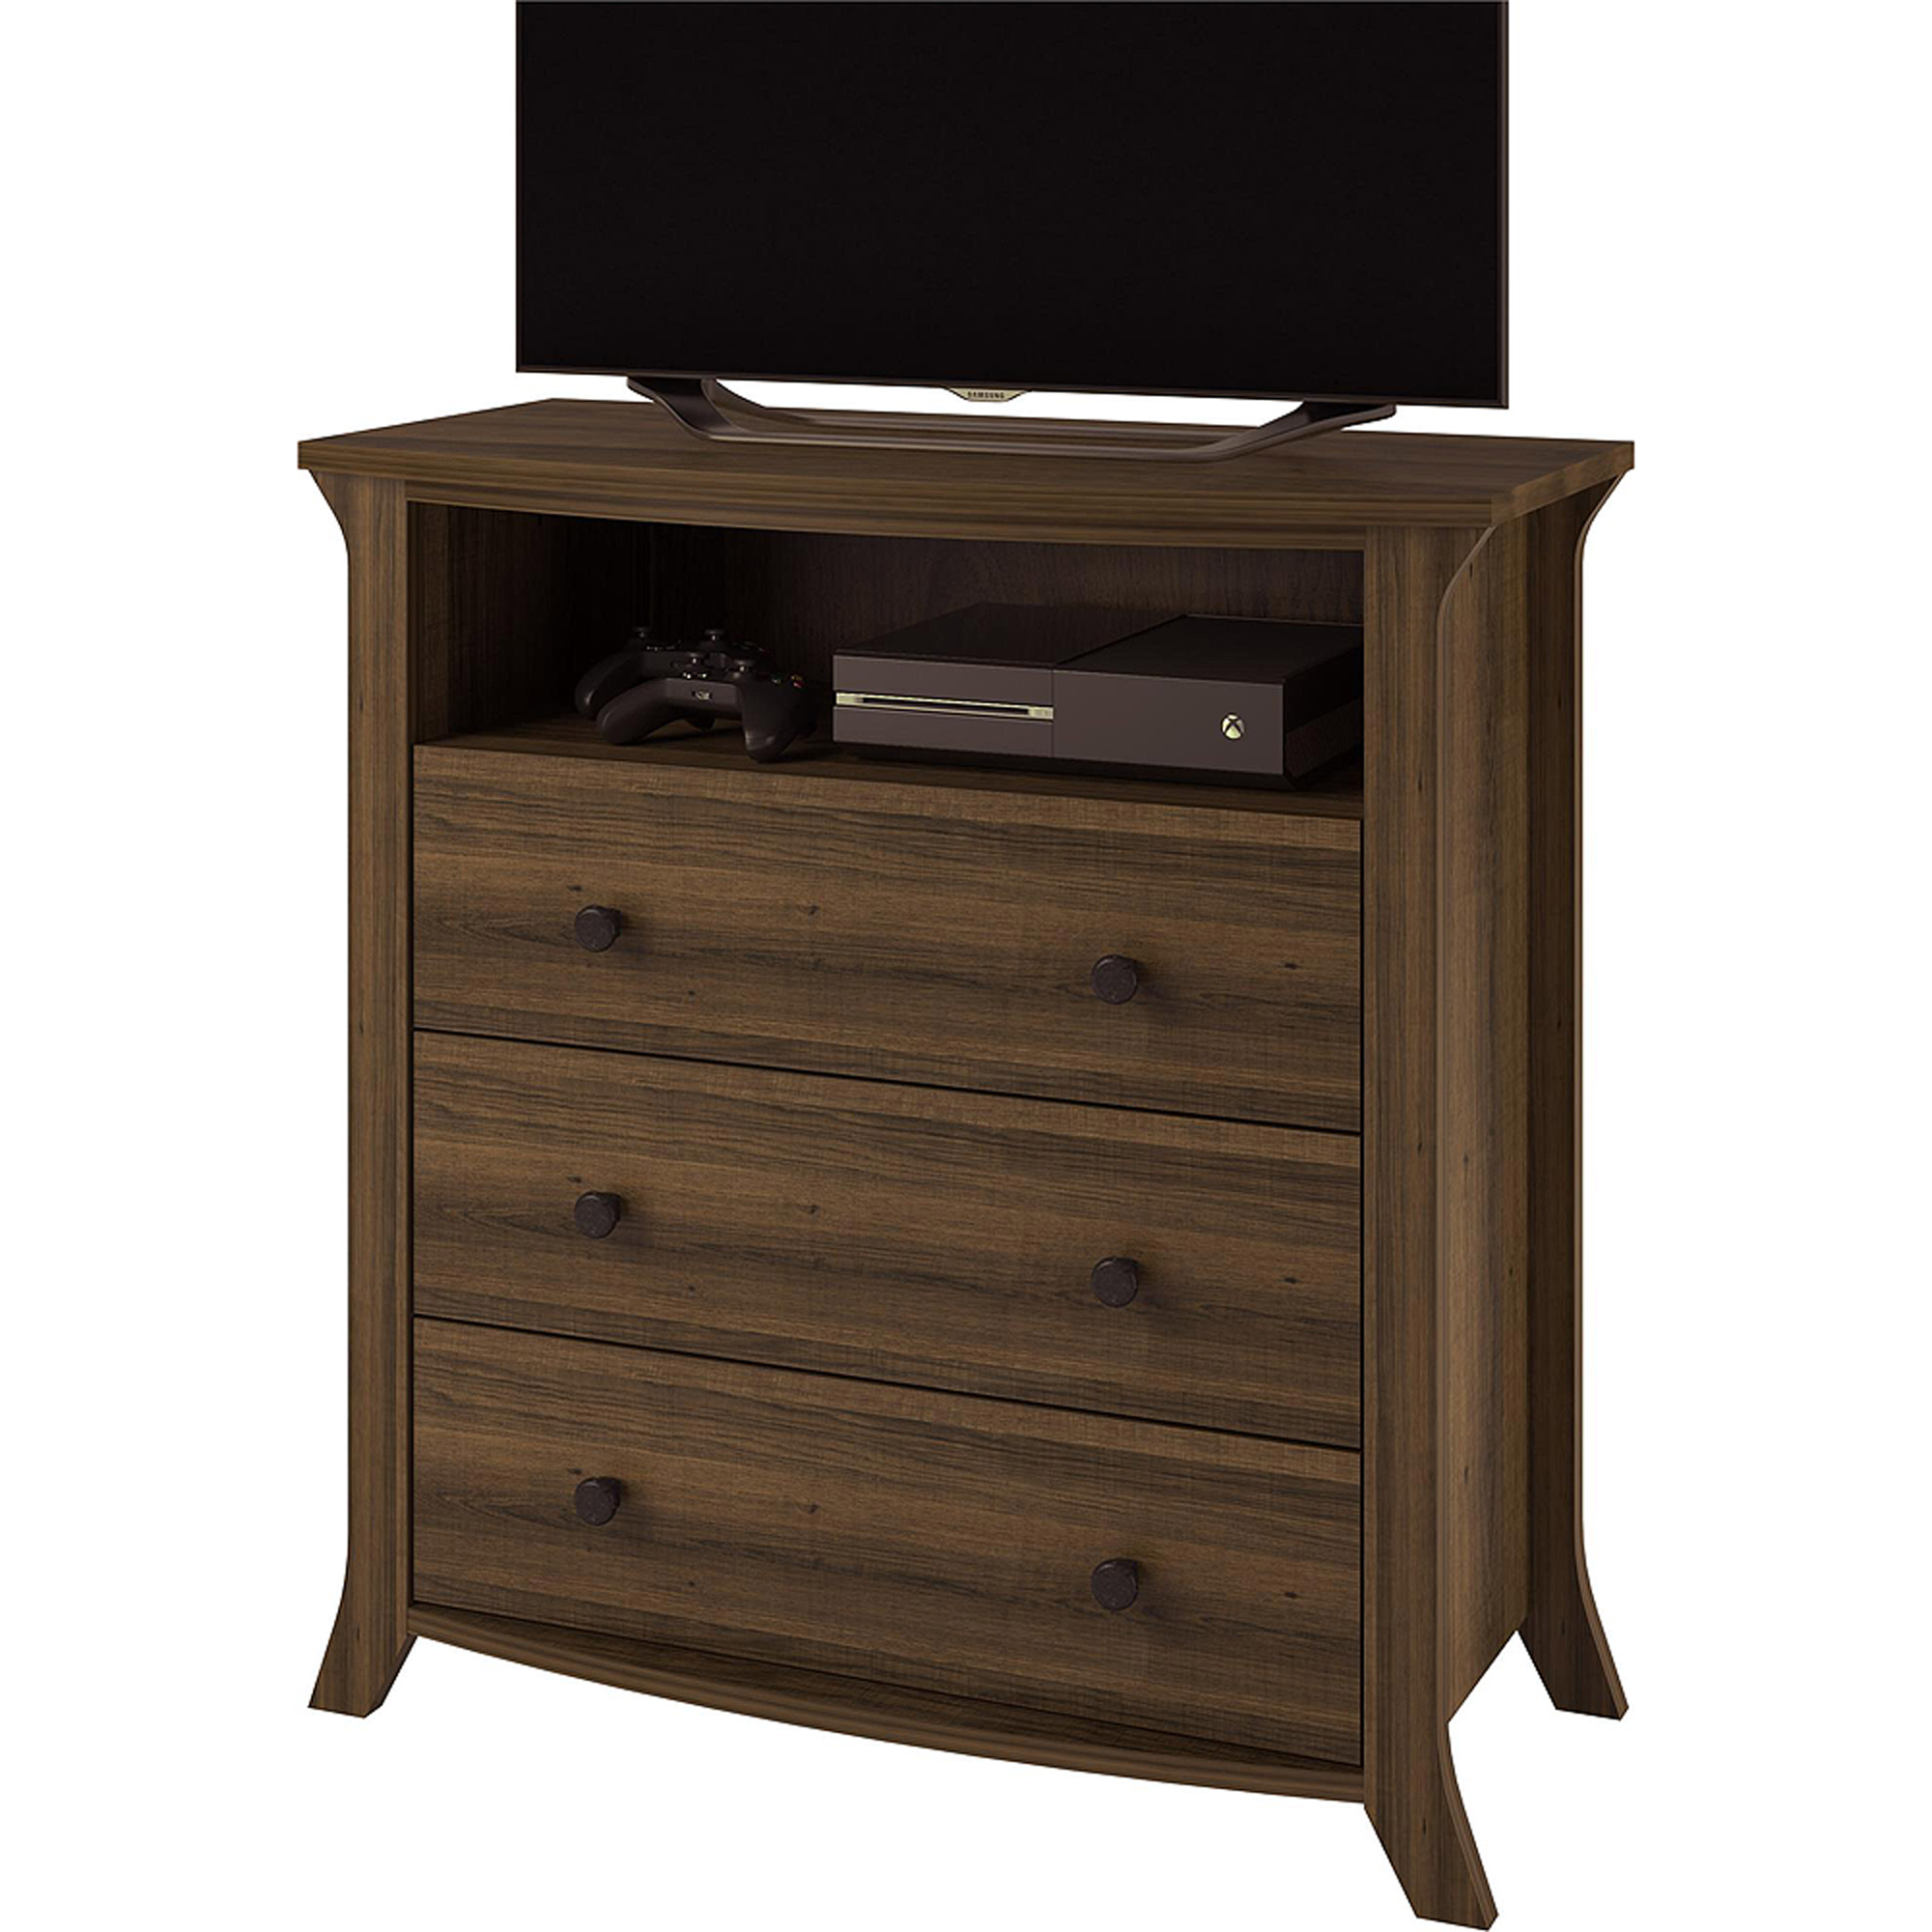 kids bedroom drawer tv stand media center video gaming storage dresser wardrobe 696394162136 ebay. Black Bedroom Furniture Sets. Home Design Ideas